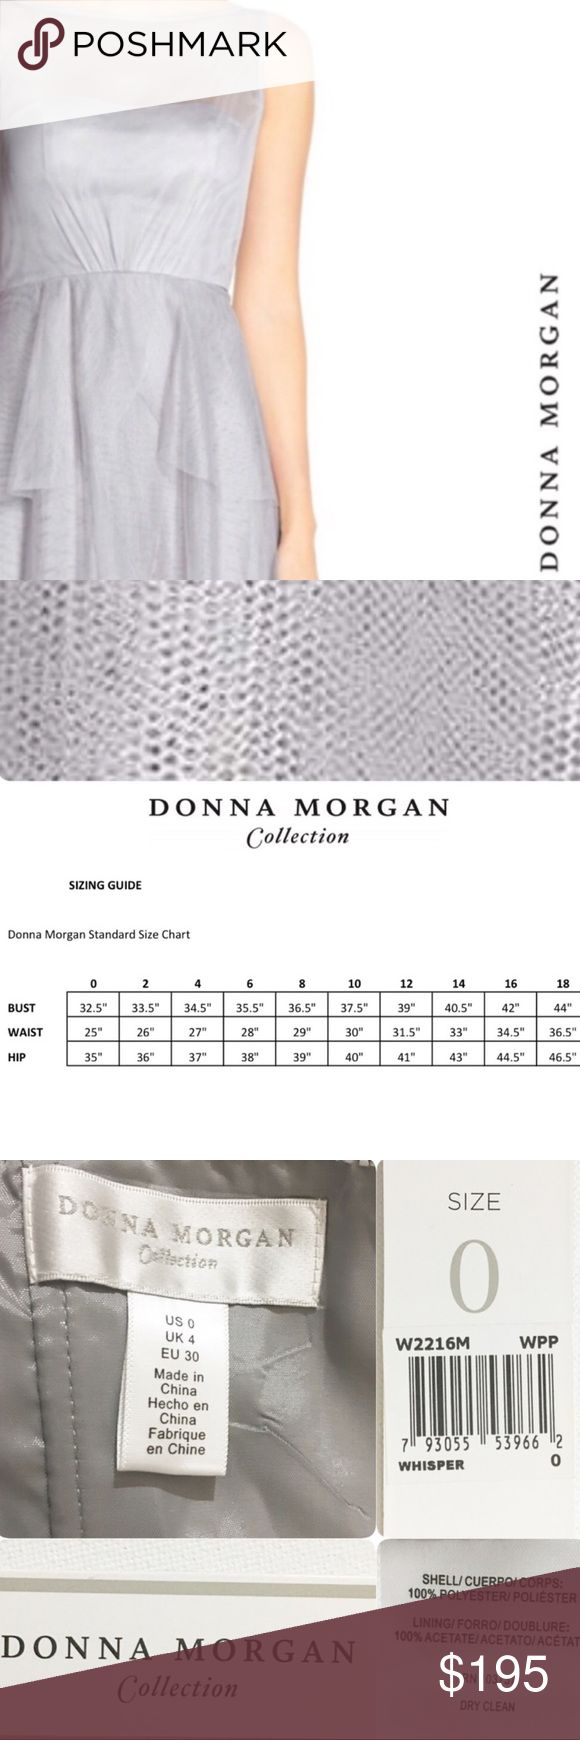 DONNA MORGAN Hyacinth Illusion Yoke Tiered Gown 0 DONNA MORGAN Hyacinth Illusion Yoke Tiered Gown 0  BRAND:Donna Morgan SIZE: 0 COLOR:Whisper MATERIAL: *Shell: 100% polyester *Lining: 100% acetate CARE: Dry Clean CONDITION: NWT STYLE: W2216M MSRP: $260 DETAILS: DM Collection. Sleeveless. Hidden back-zip & keyhole closure. Sweetheart neckline w/bateau-neck illusion overlay. Soft pleats bodice. Floor-length. Lined. Light padded soft cups. Made in China  True to size APPROX. MEASUREMENTS…